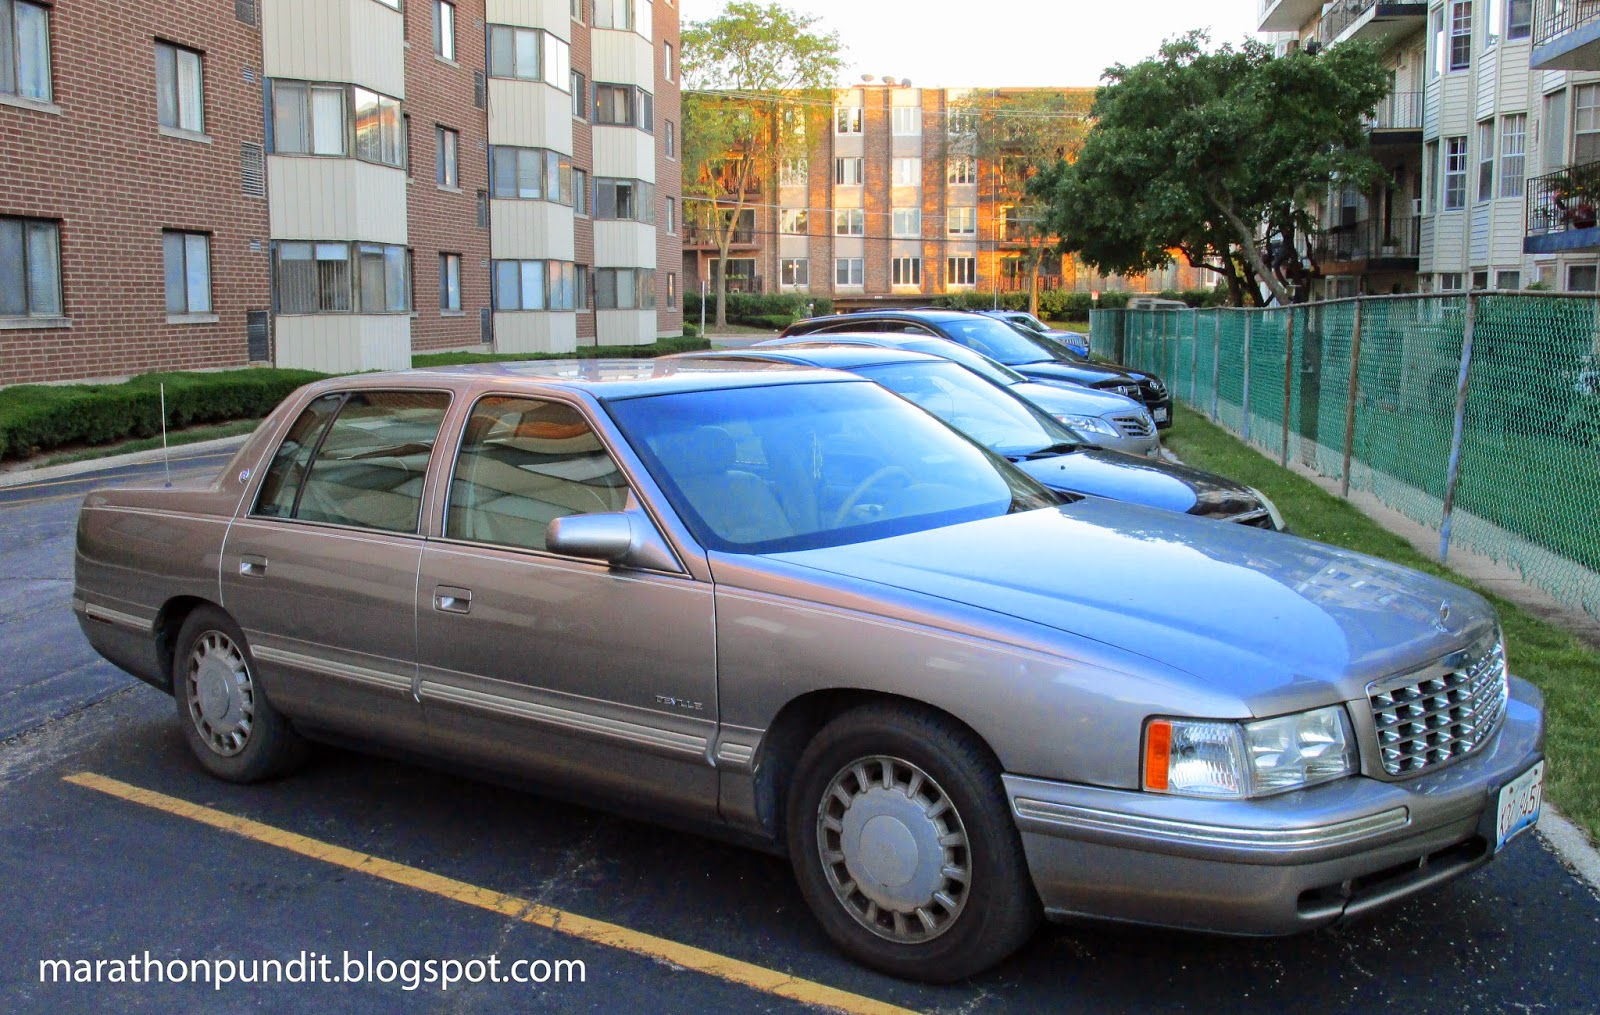 marathon pundit classic car 1998 cadillac deville. Cars Review. Best American Auto & Cars Review